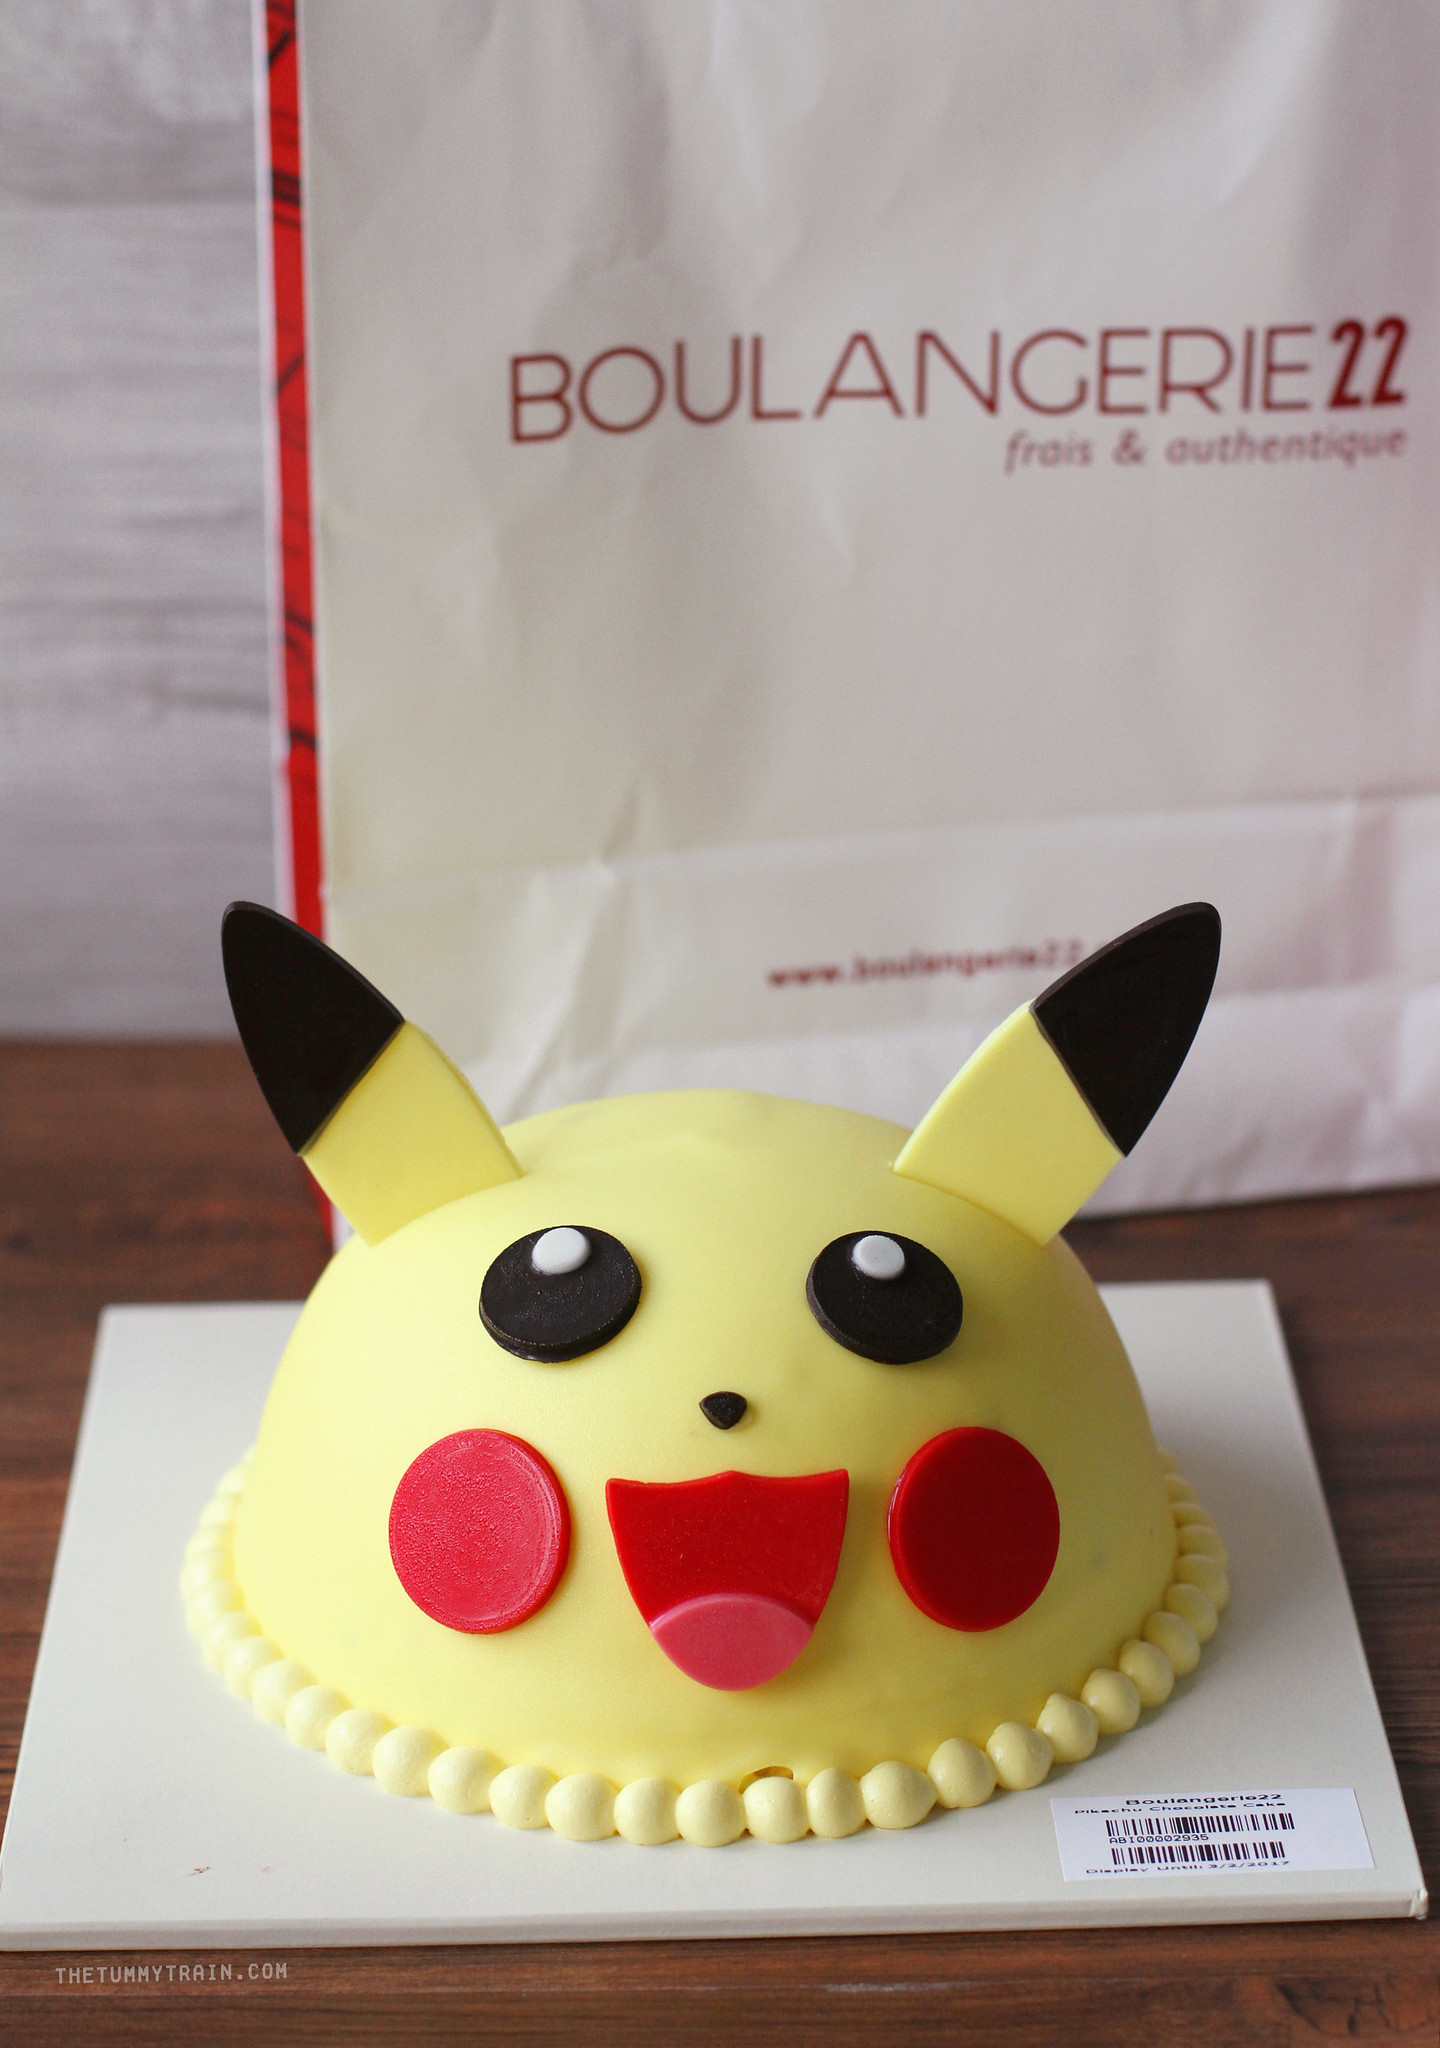 33305204855 6e19863c36 k - Fuel your Pokemon Go craze with Boulangerie22 Pokemon Cakes